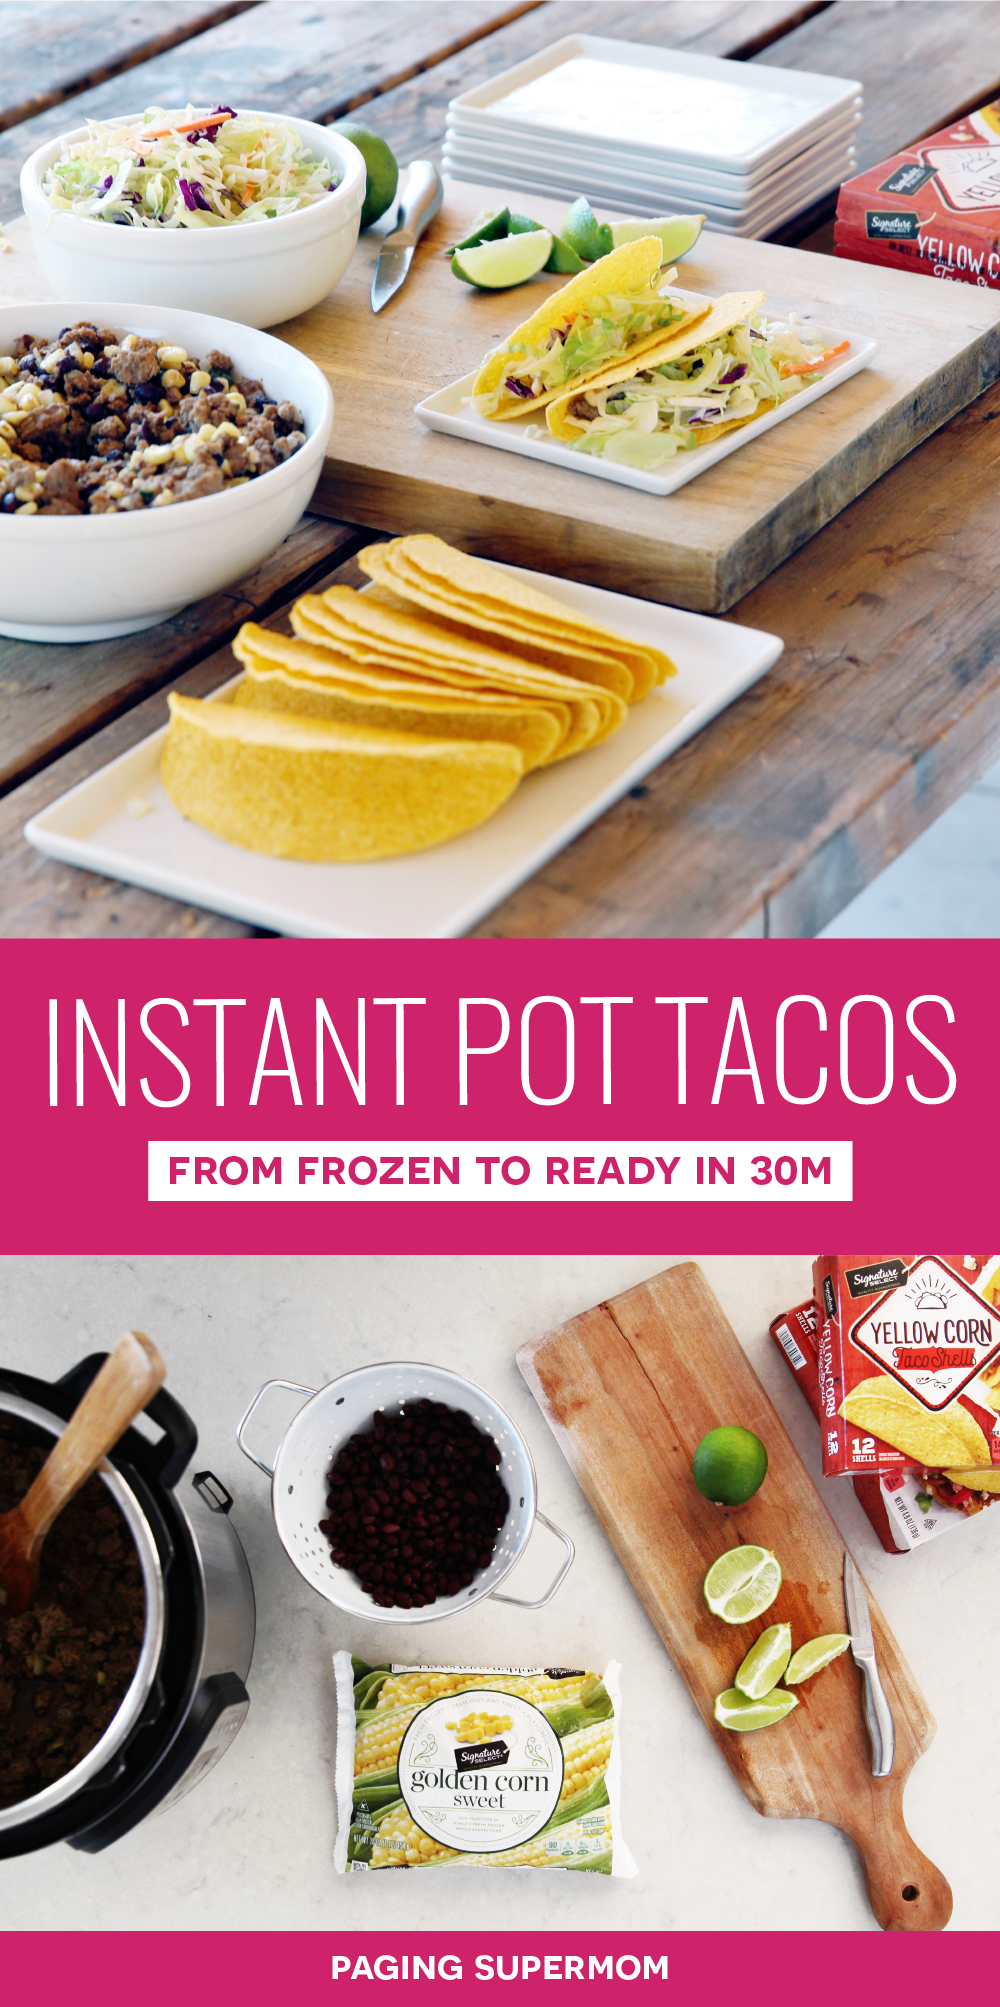 Instant Pot Taco Recipe - go from frozen to ready to eat in less than 30 minutes!